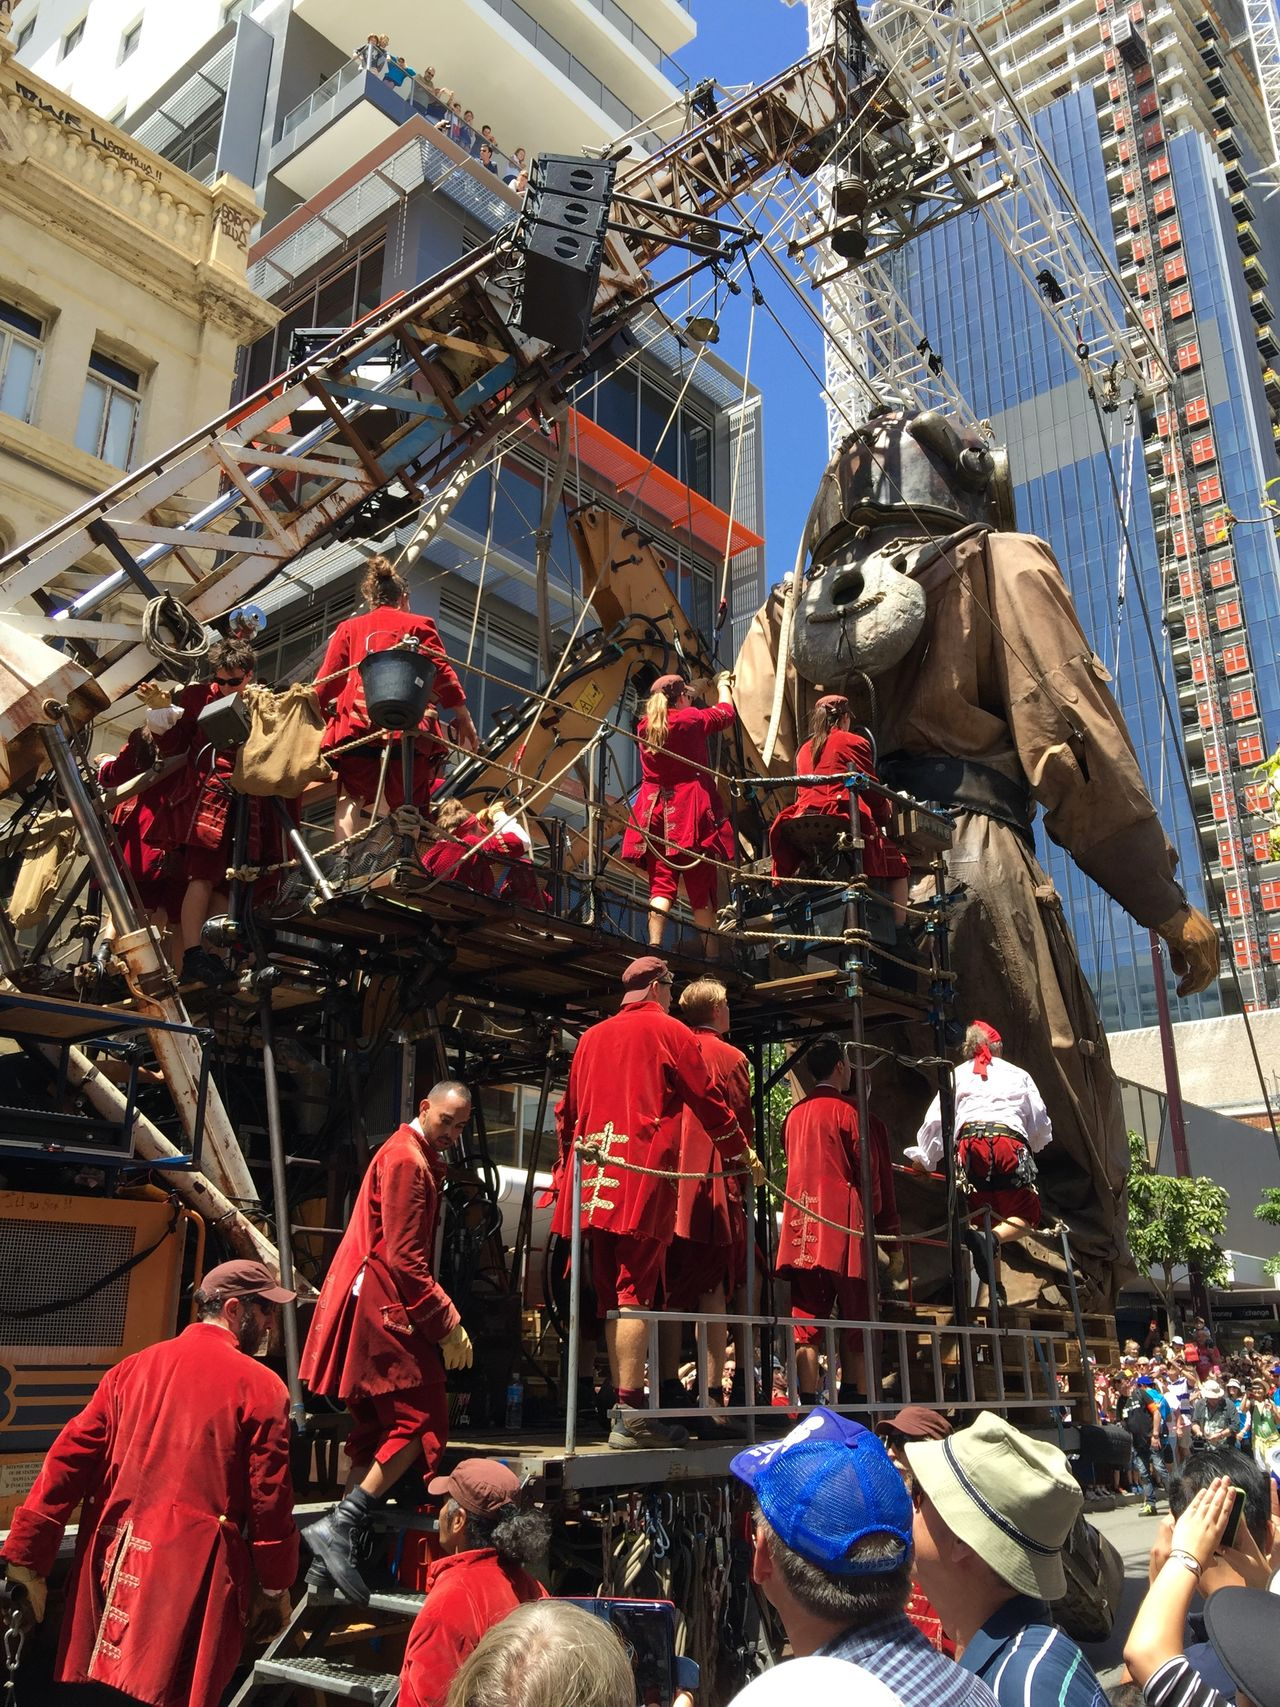 PERTH, AUSTRALIA-FEBRUARY 14, 2015: Journey of the Giants, Giant Marionette Diver and Puppeteers in action, public International Arts Festival Art Art Event Australia Australianshepherd Belts And Pulleys City Cityscape Crane Crowds Culture Diver Festival Giant Human International Journey Marionette People Puppeteers Walking Winchester Wooden